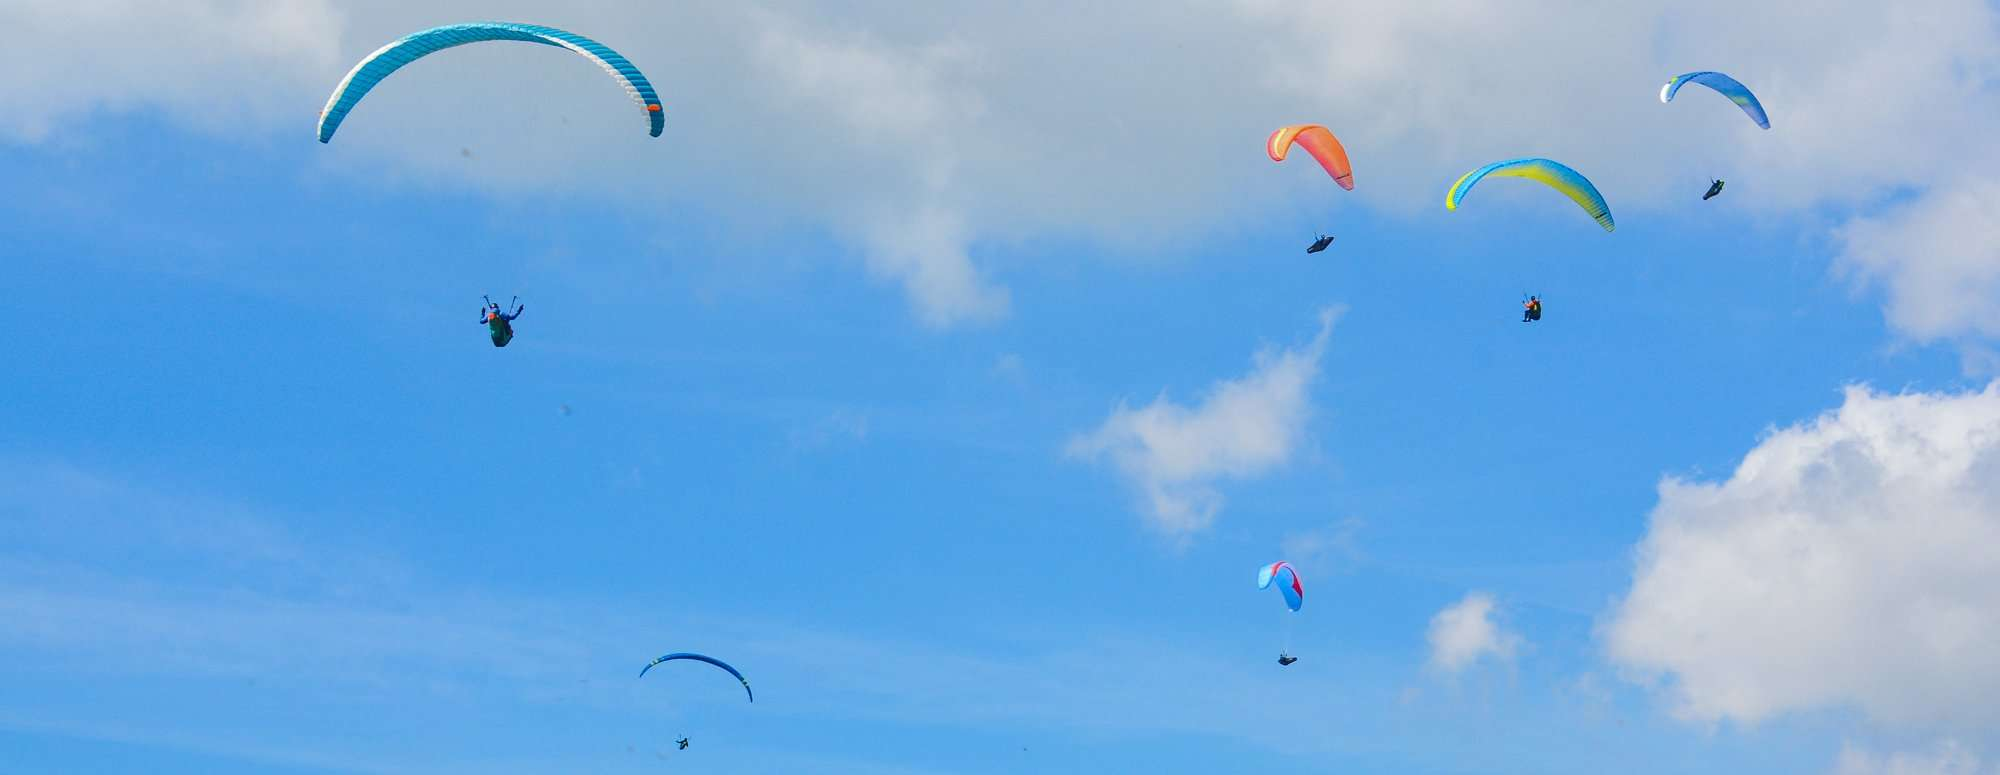 Paragliders flying high